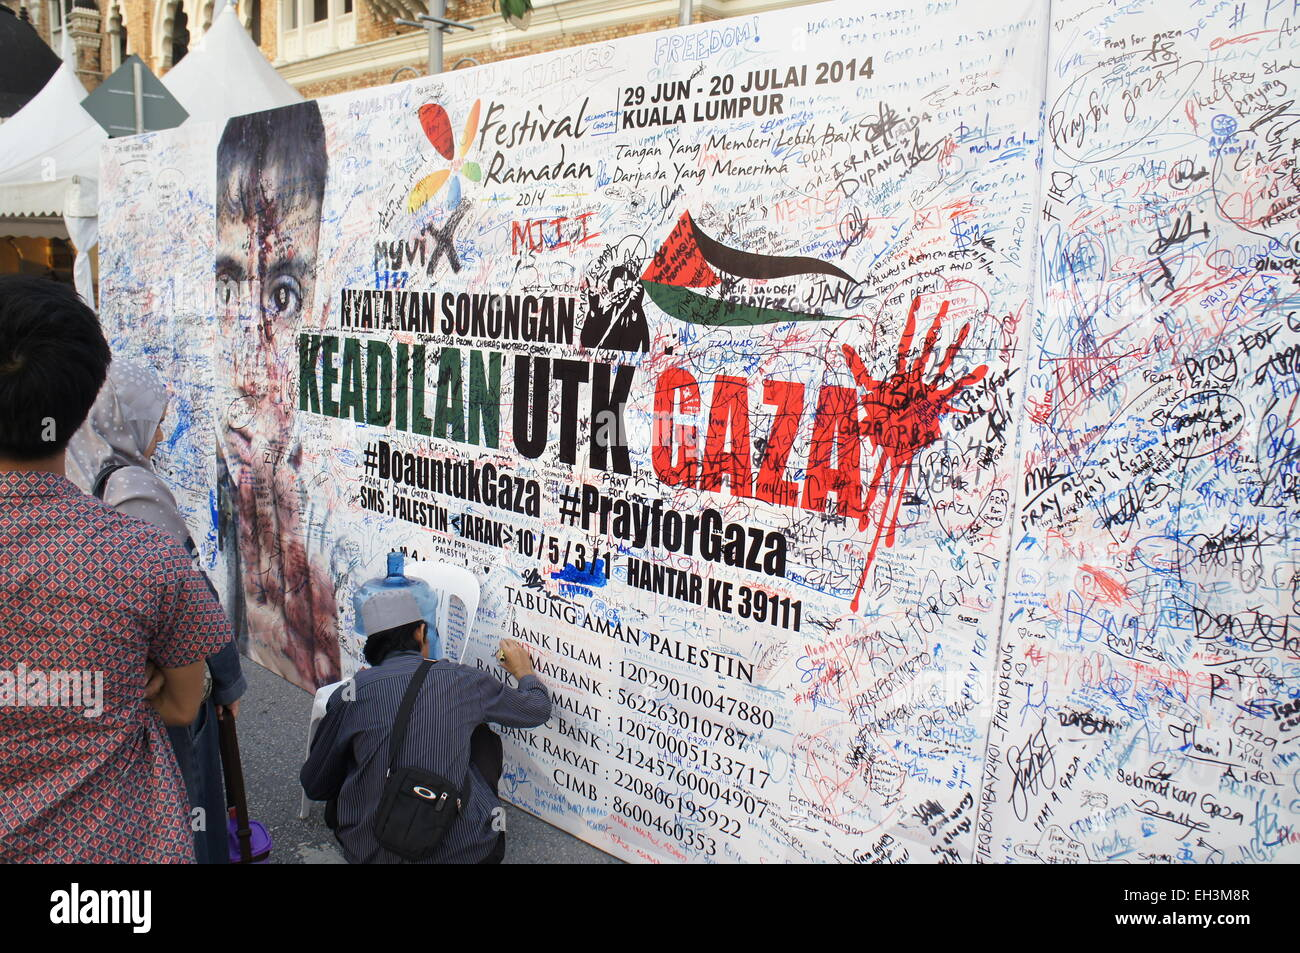 Malaysians signing petition in support of justice for Gaza, aid  donation campaign - Stock Image